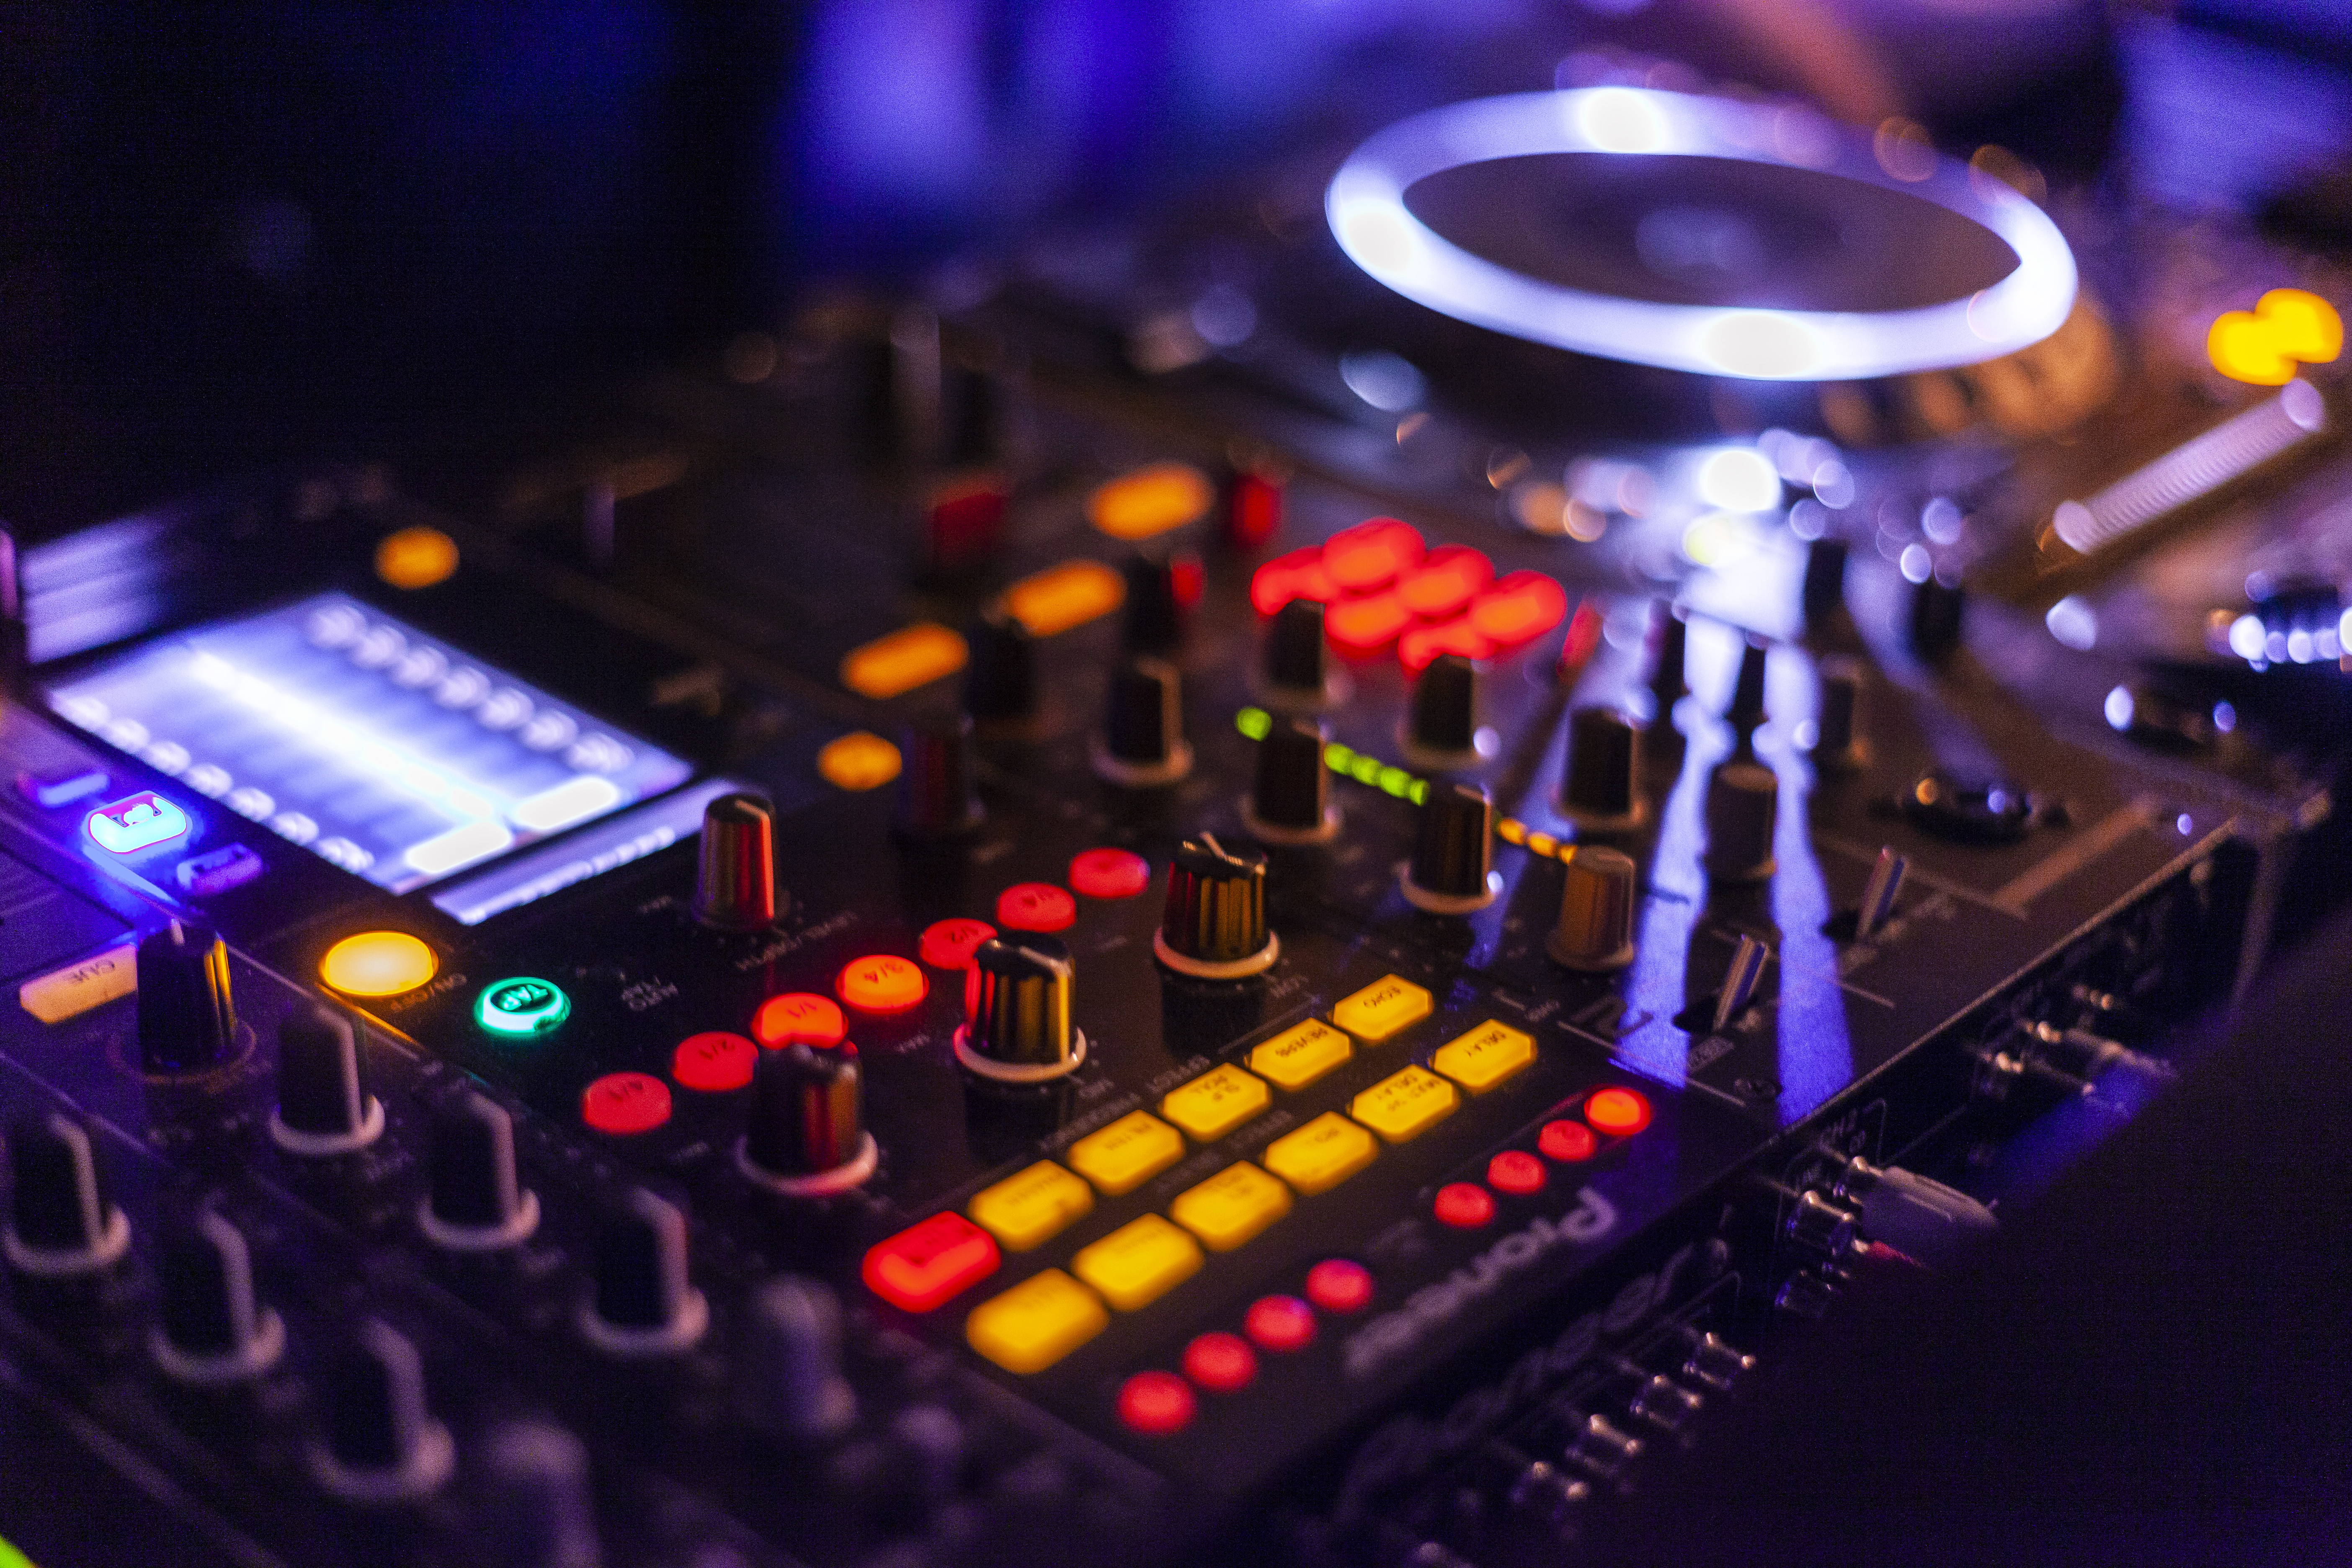 Lighted Dj Controller